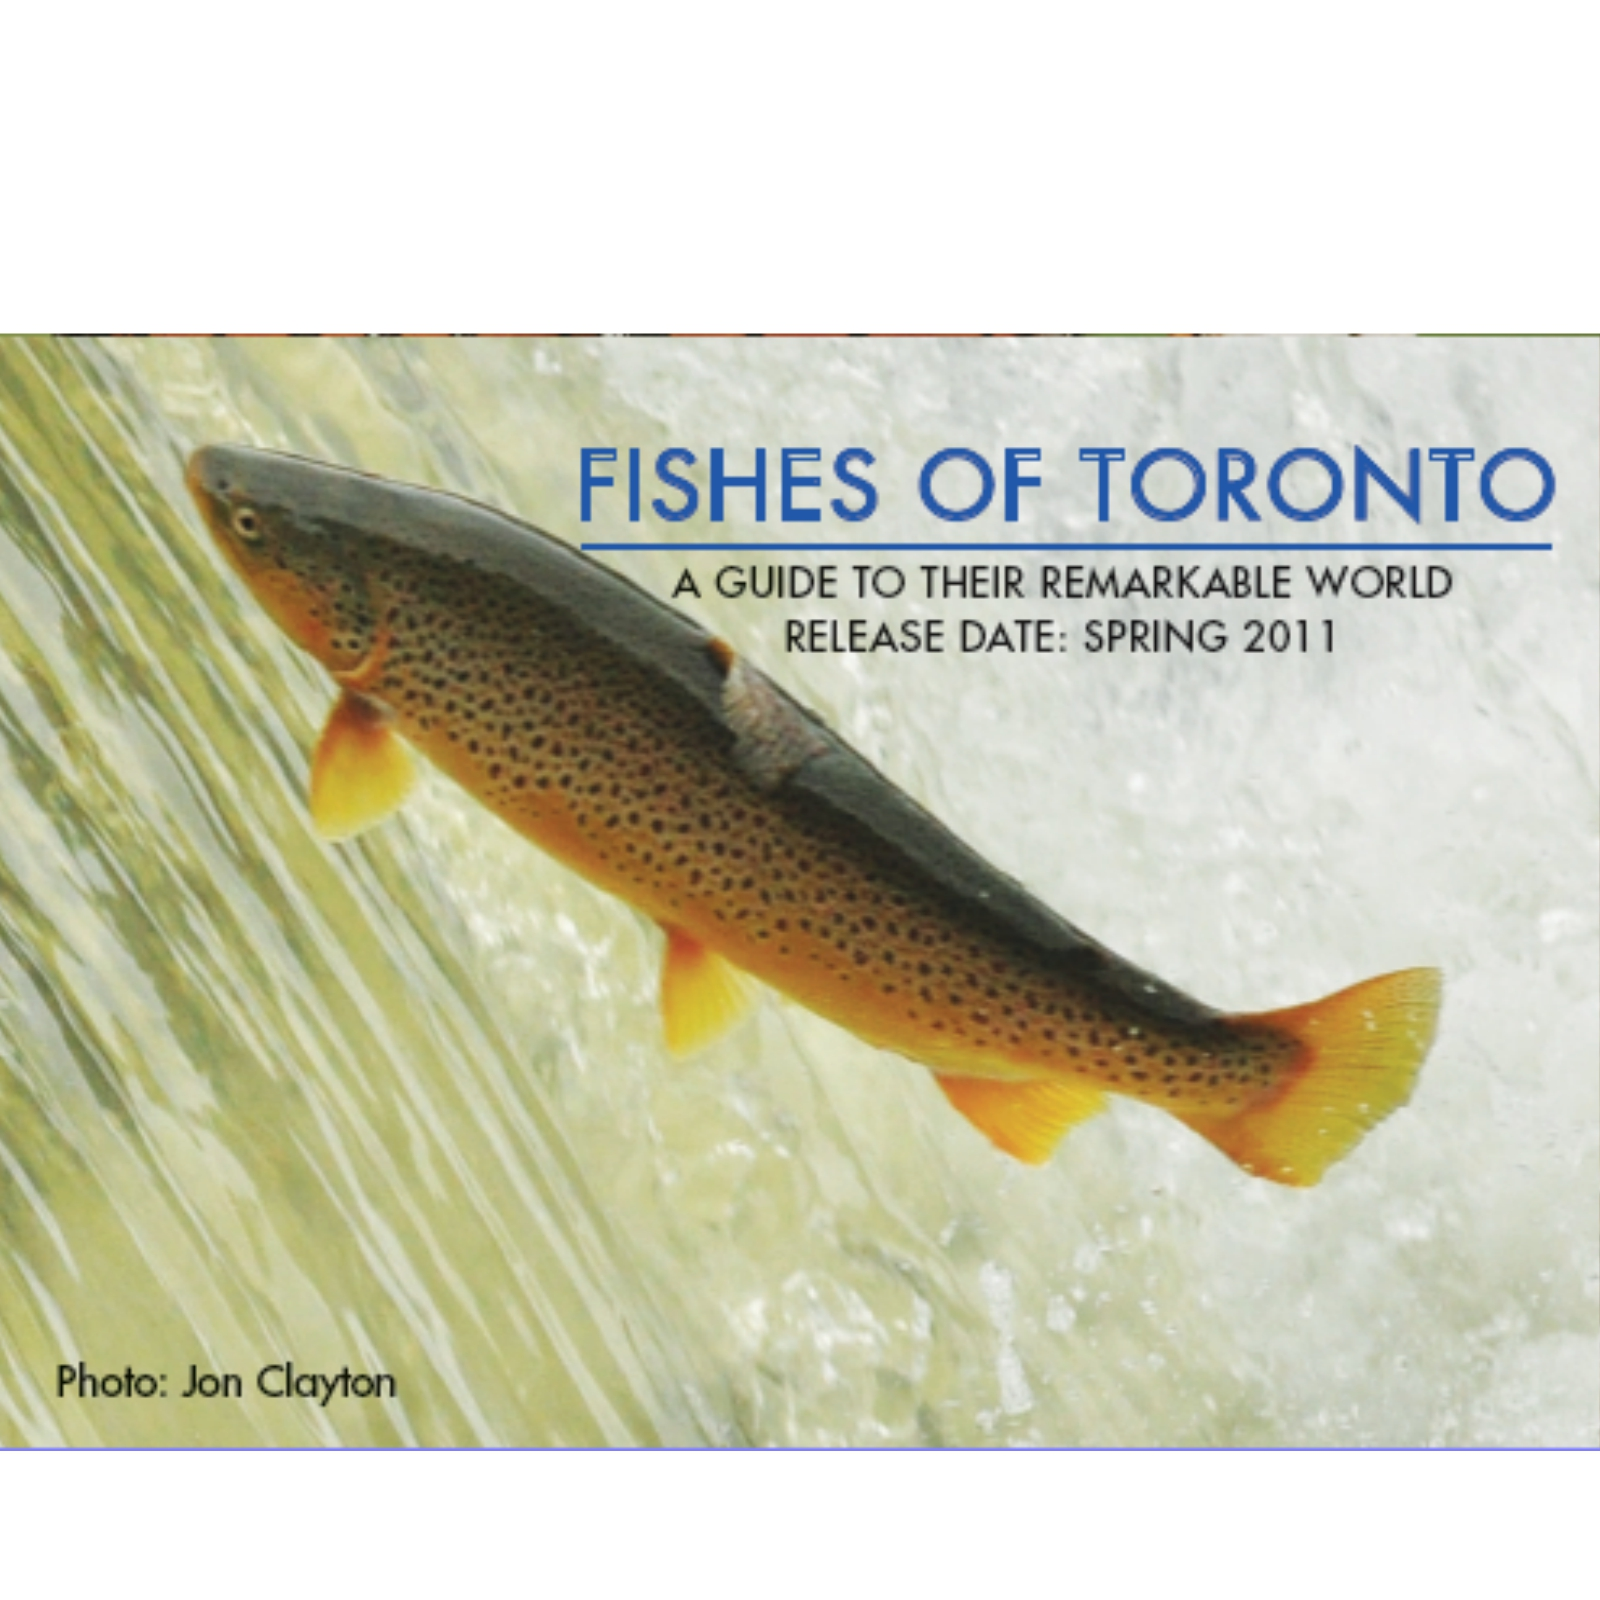 FISHES OF TORONTO PT2